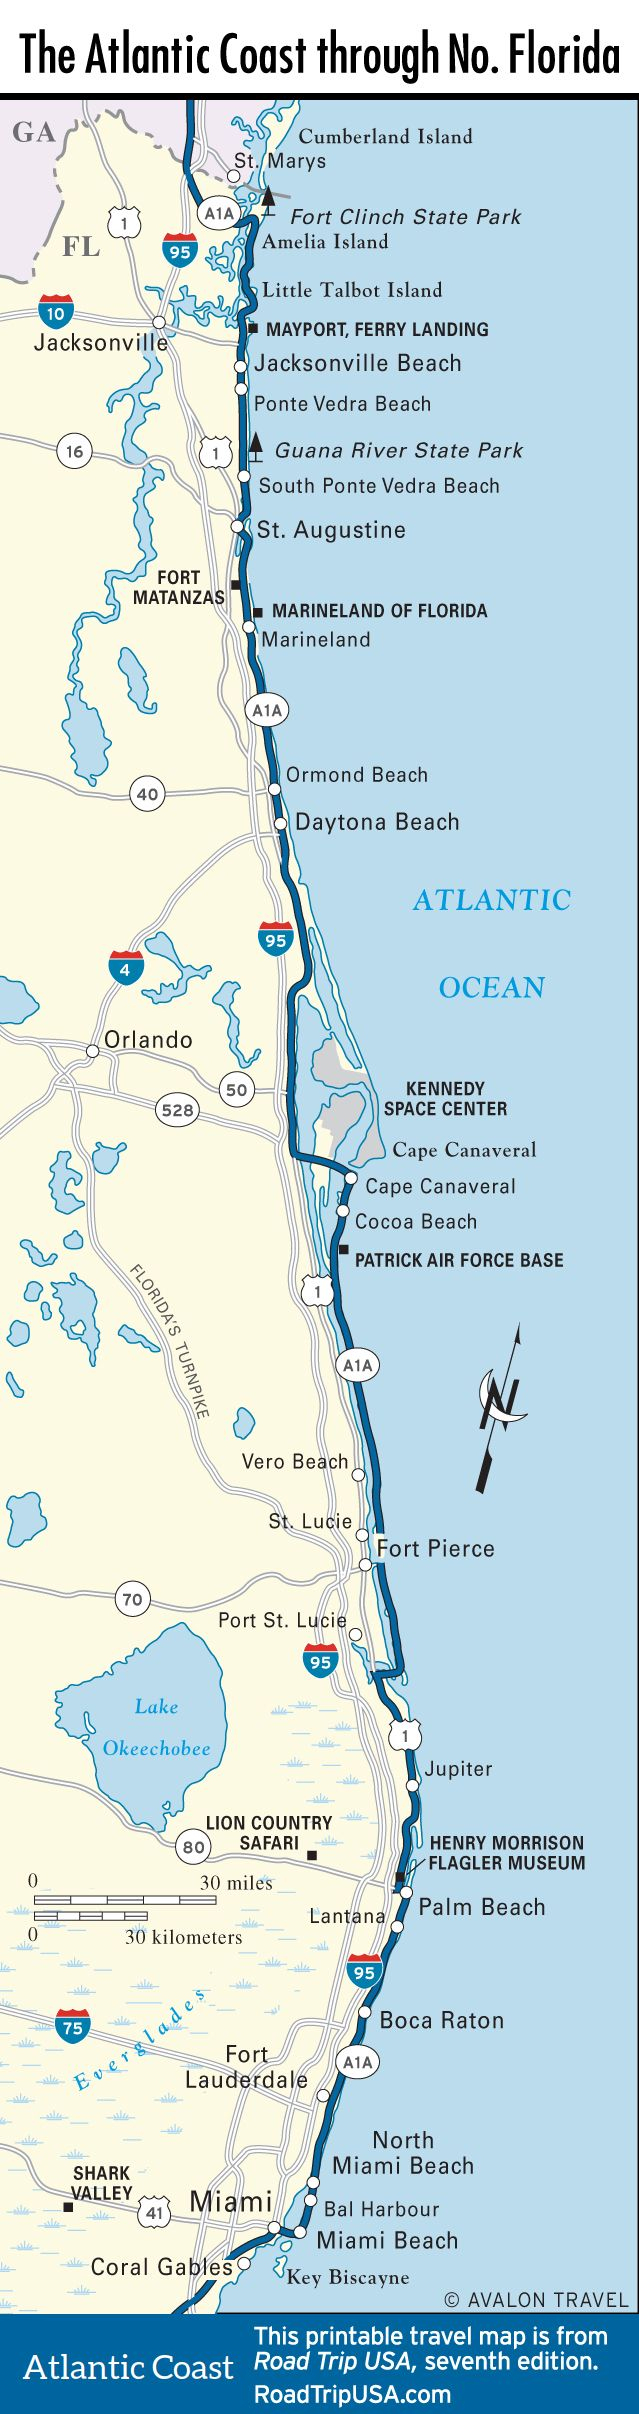 Map Of The Atlantic Coast Through Northern Florida. | Florida A1A - Map Of Florida Beaches Gulf Side